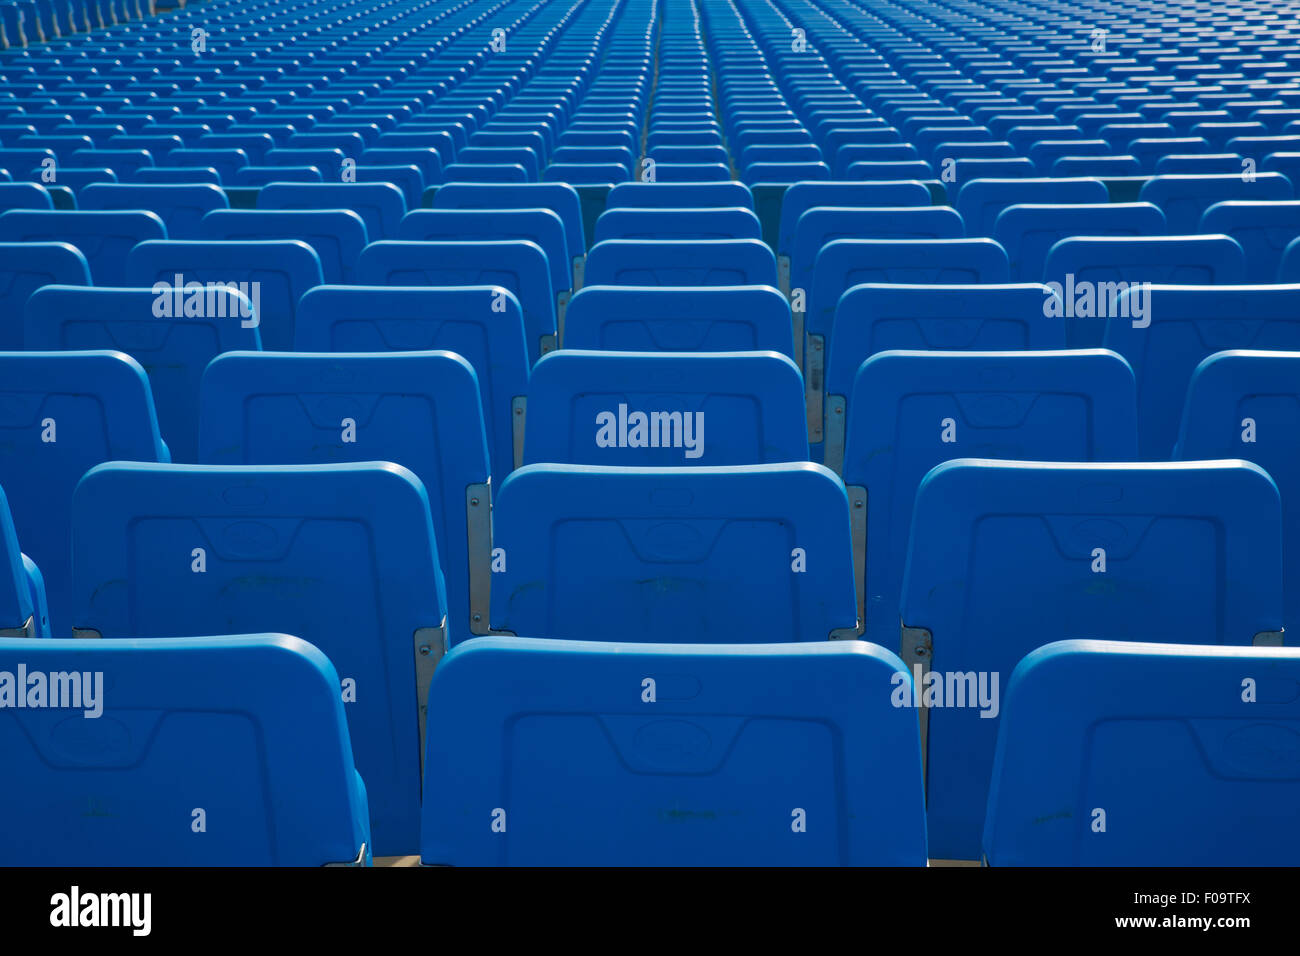 Rows of blue concert chairs. - Stock Image